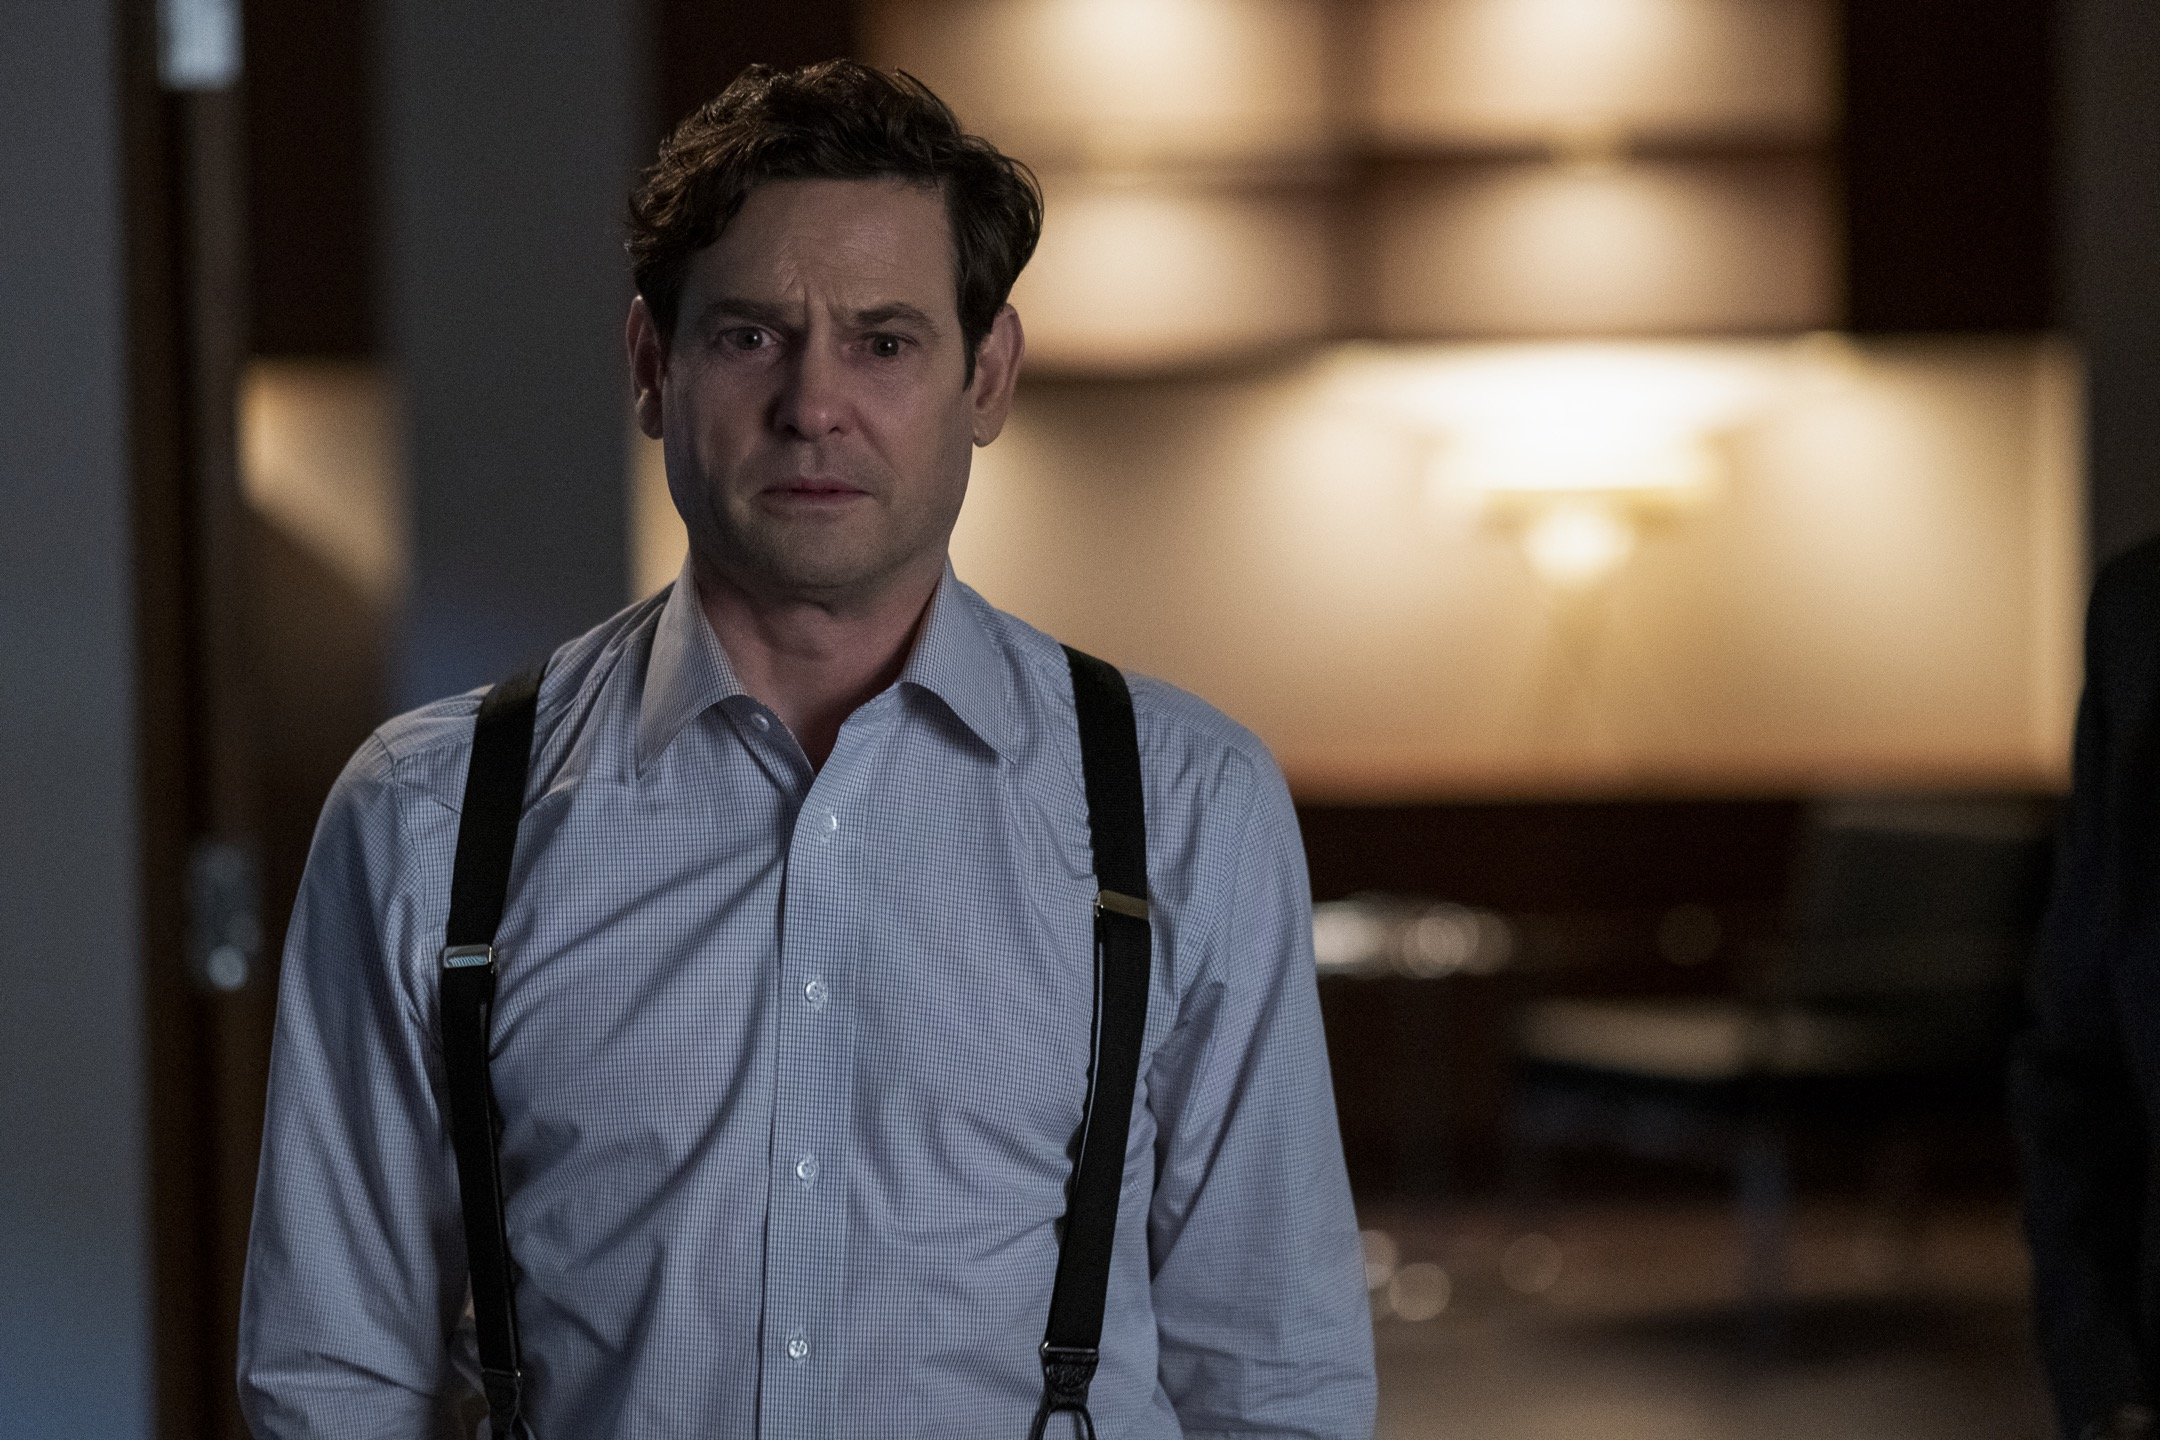 THE HAUNTING OF BLY MANOR (L to R) HENRY THOMAS as HENRY WINGRAVE in episode 106 of THE HAUNTING OF BLY MANOR Cr. EIKE SCHROTER/NETFLIX © 2020